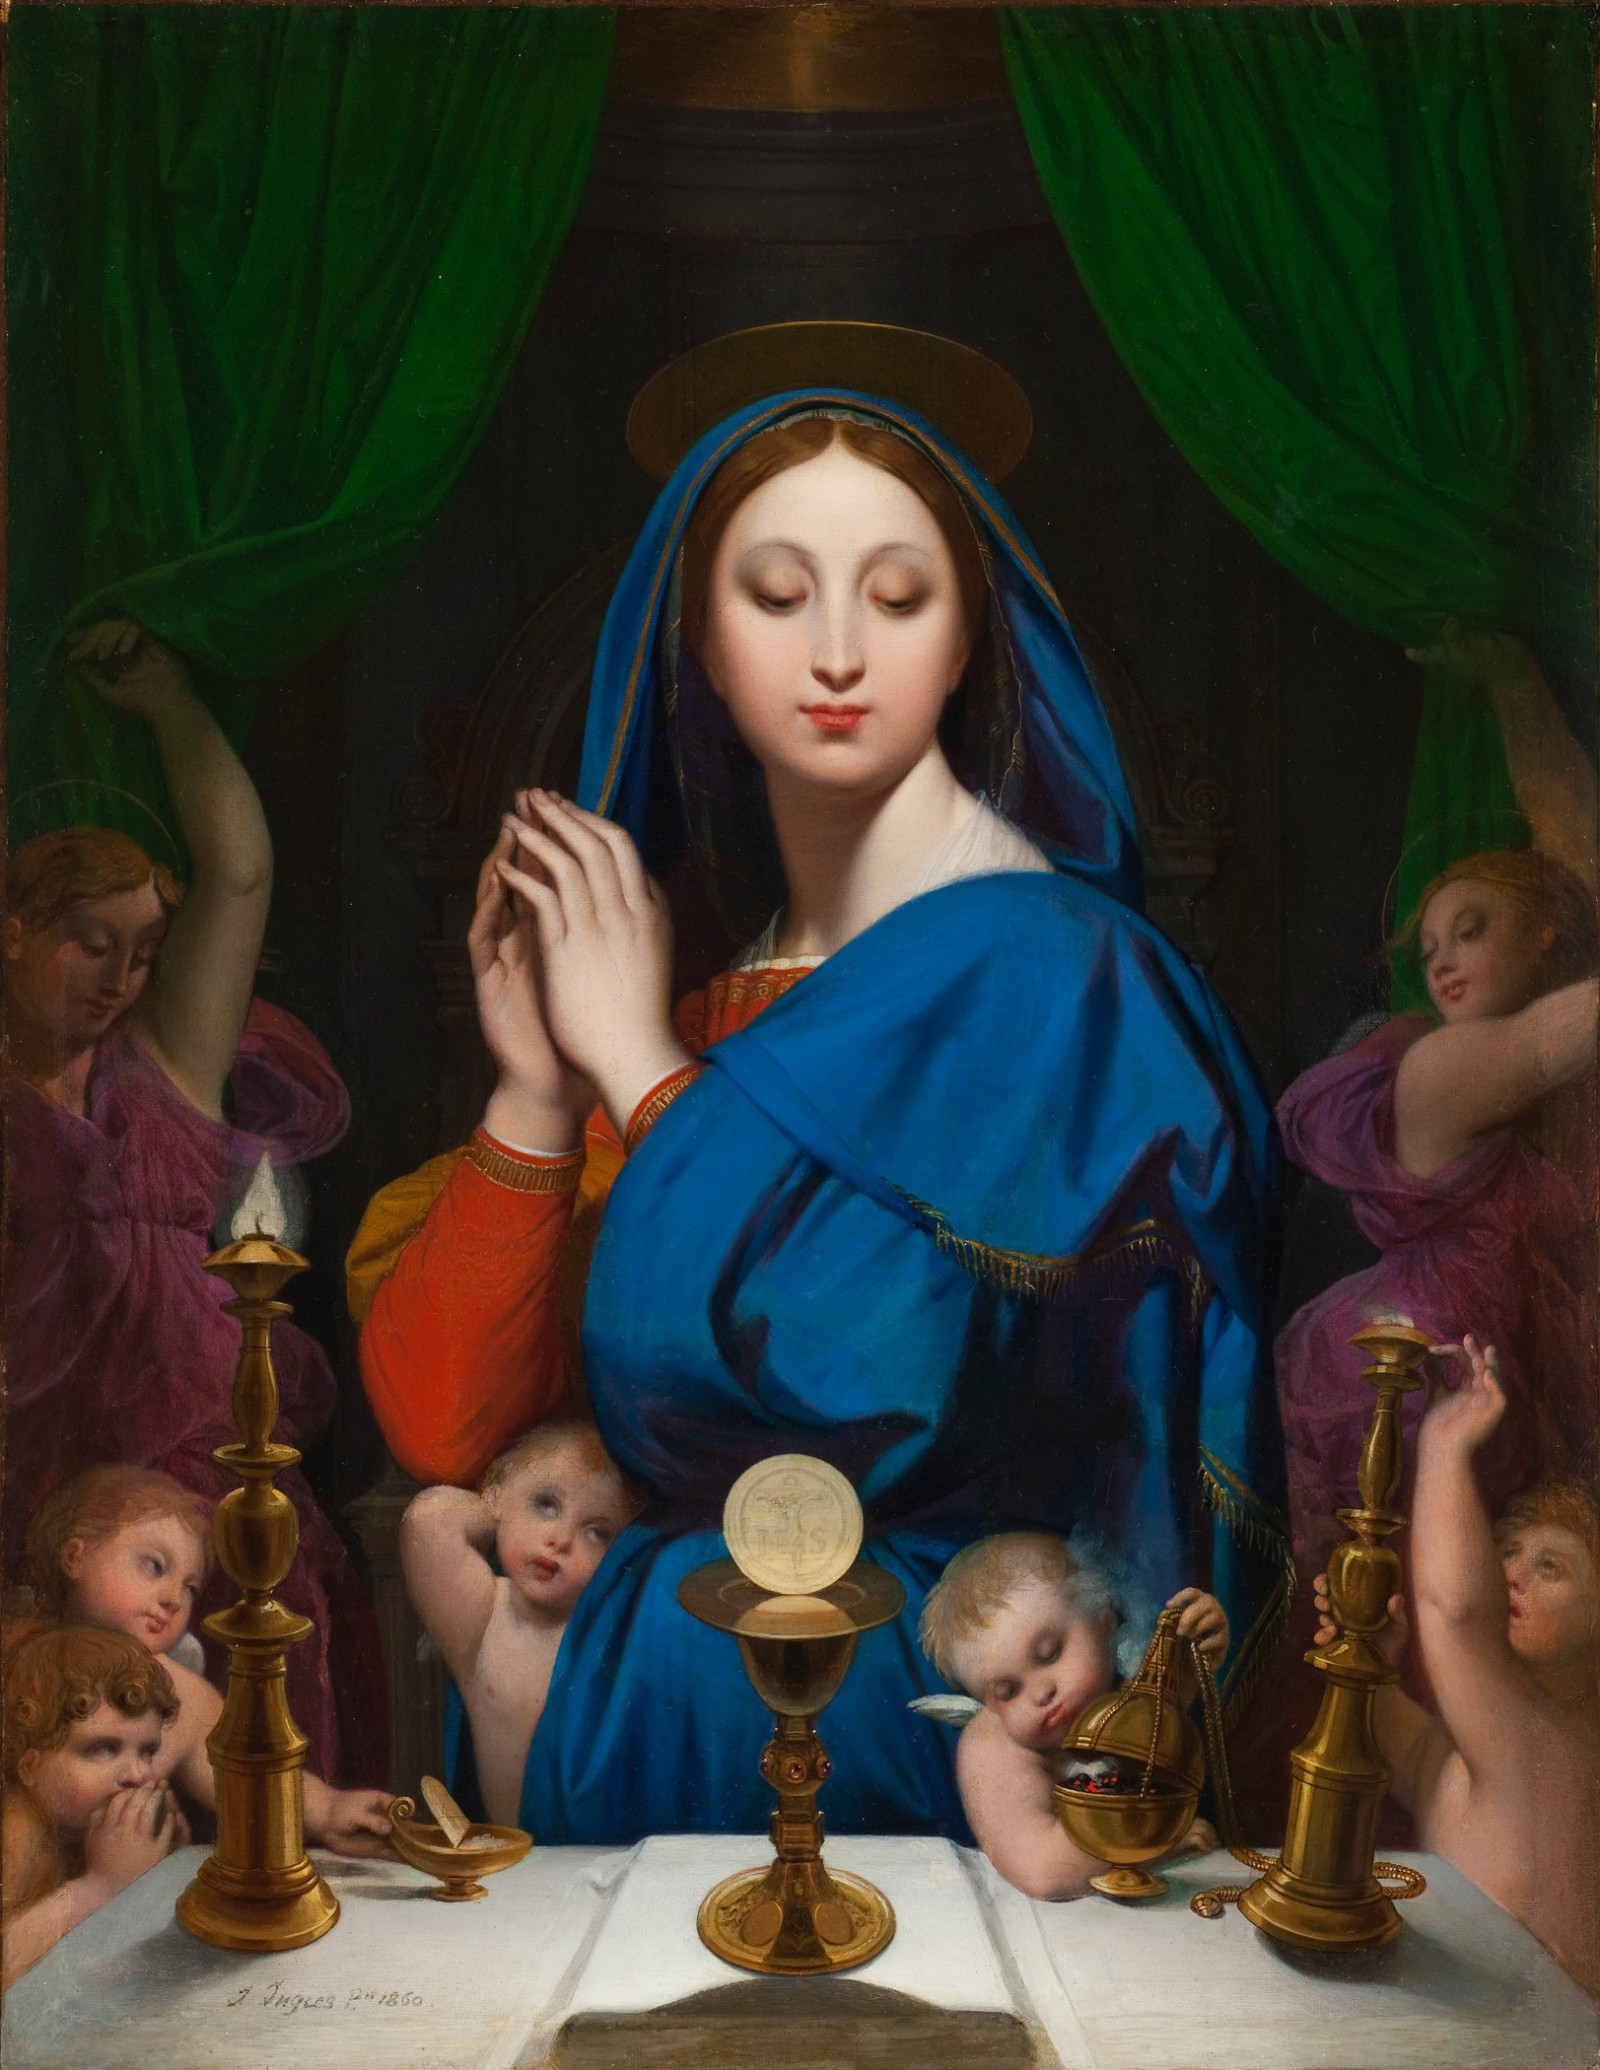 Image: Jean-Auguste-Dominique Ingres, The Virgin with the Host, 1860